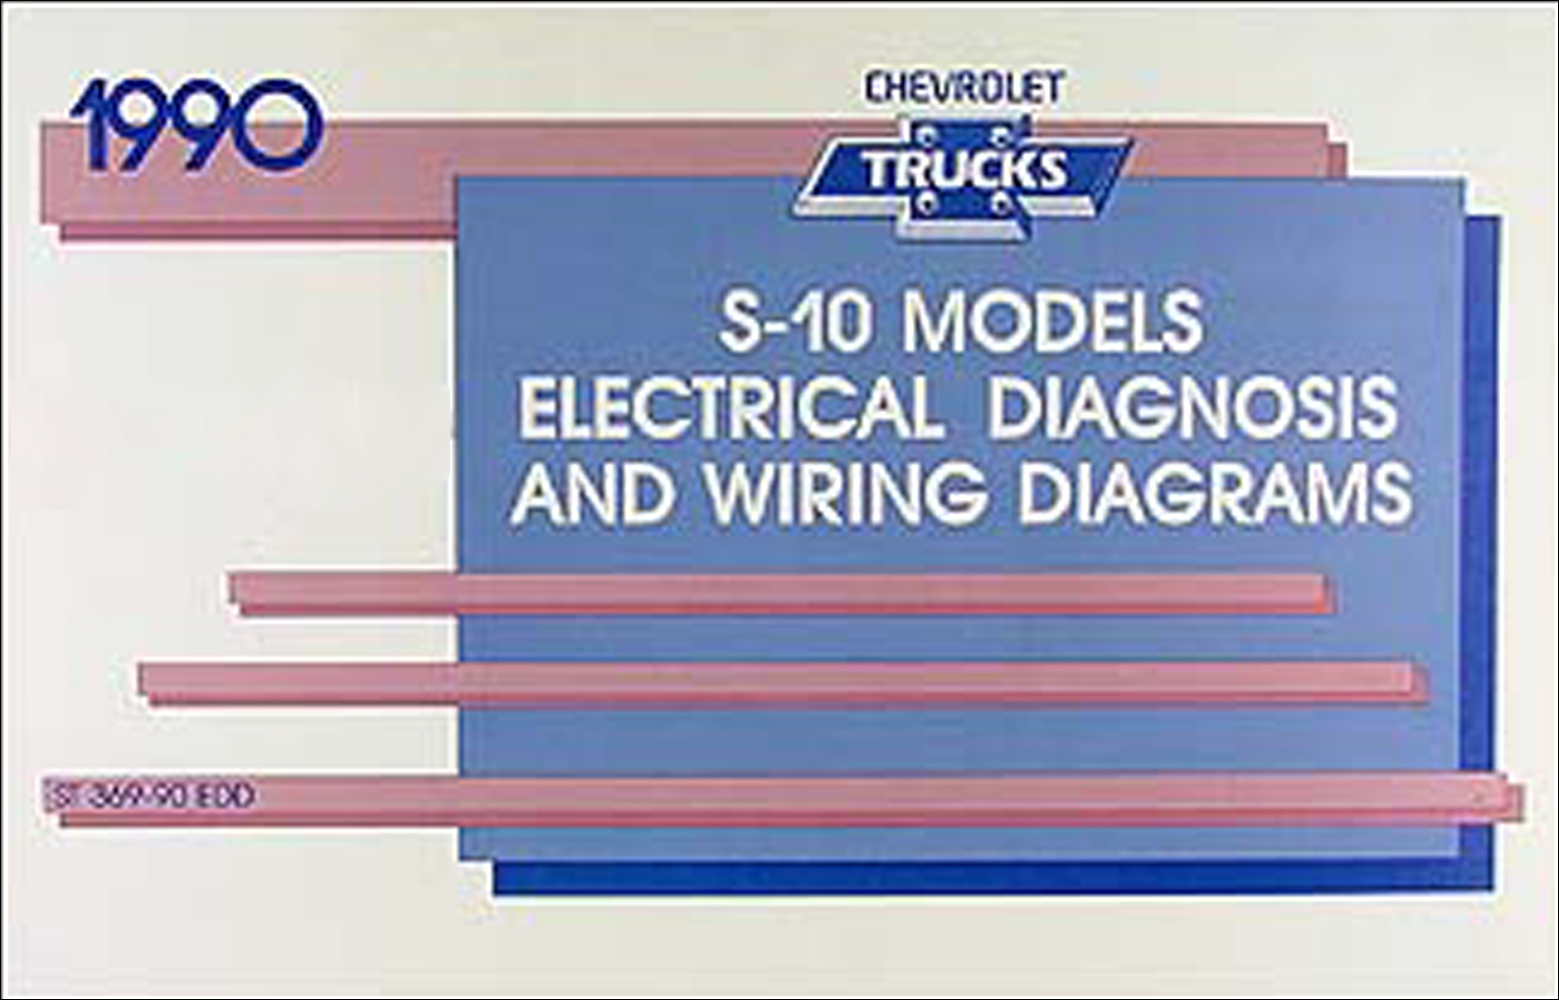 1990 Chevy Blazer Wiring Diagram Circuit Schematic 1994 S 10 Pickup Manual Original